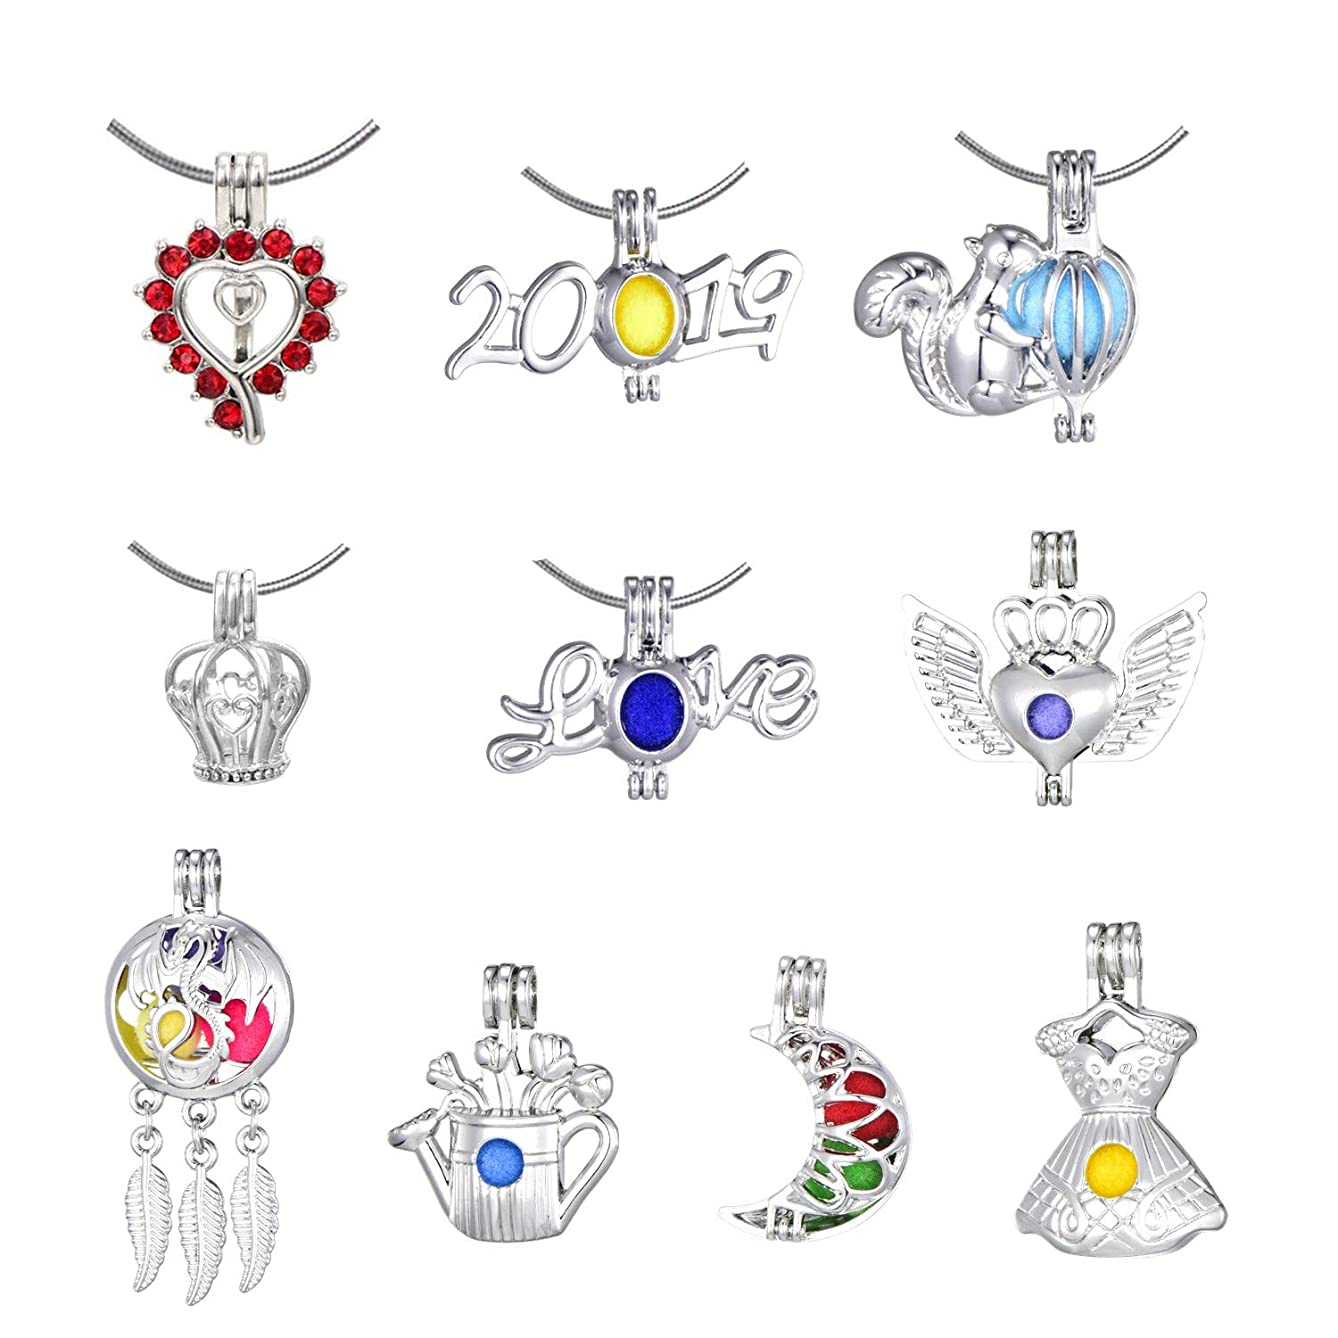 New Arrival 10Pcs Pearl Bead Cage Pendants White Gold Plated Hollow Aromatherapy Essential Oil Diffuser Locket Pendant for Jewelry Making(Style10)